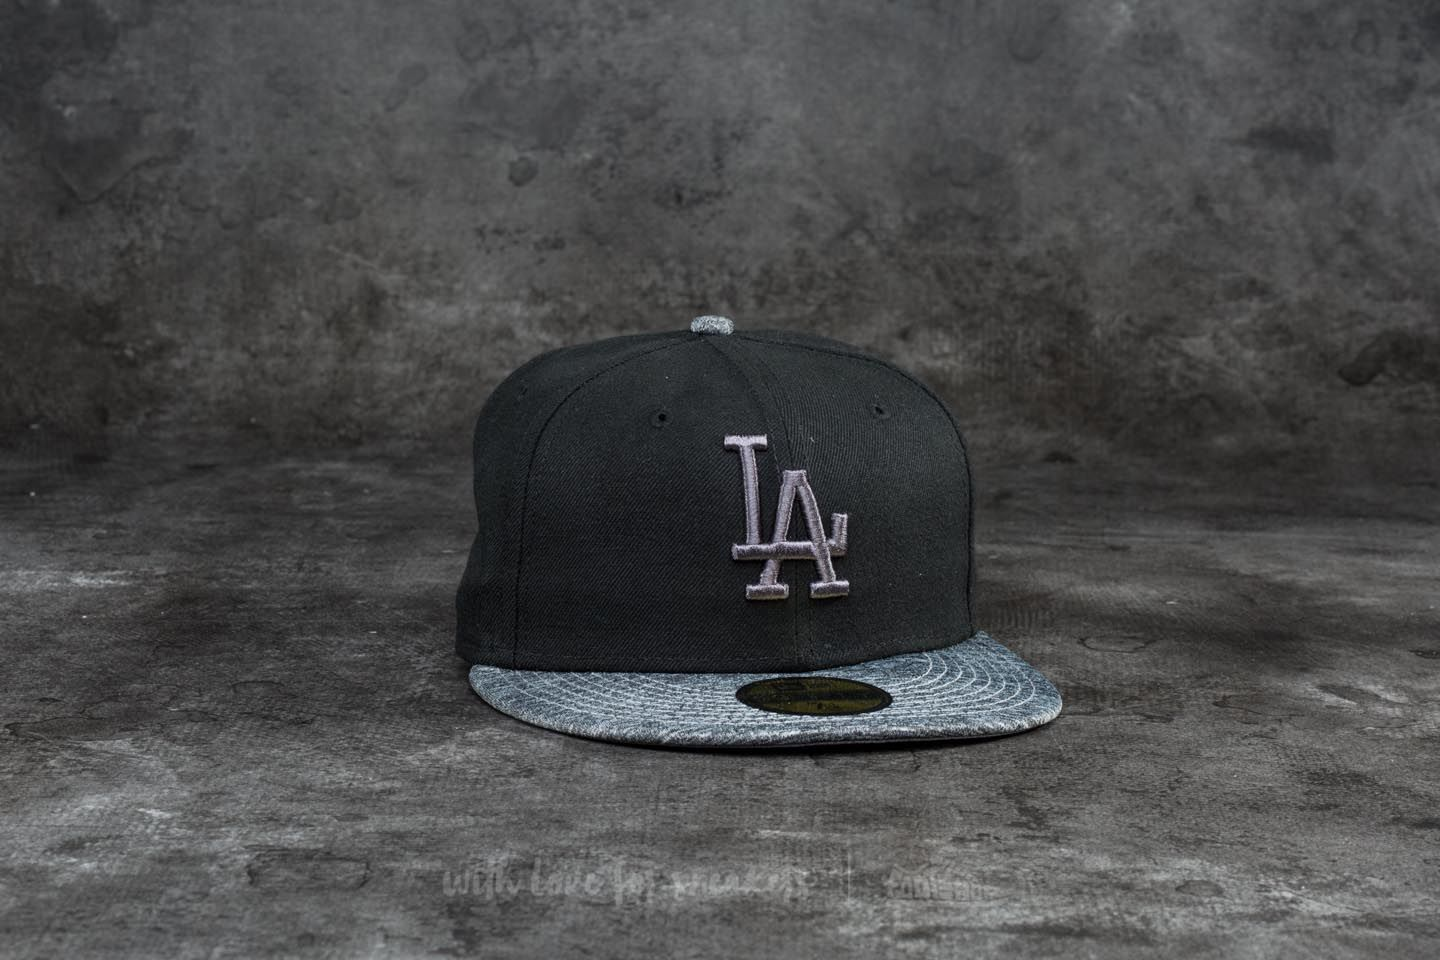 New Era 59Fifty Grey Collection Los Angeles Dodgers Cap Black/ Grey Heather za skvělou cenu 699 Kč koupíte na Footshop.cz